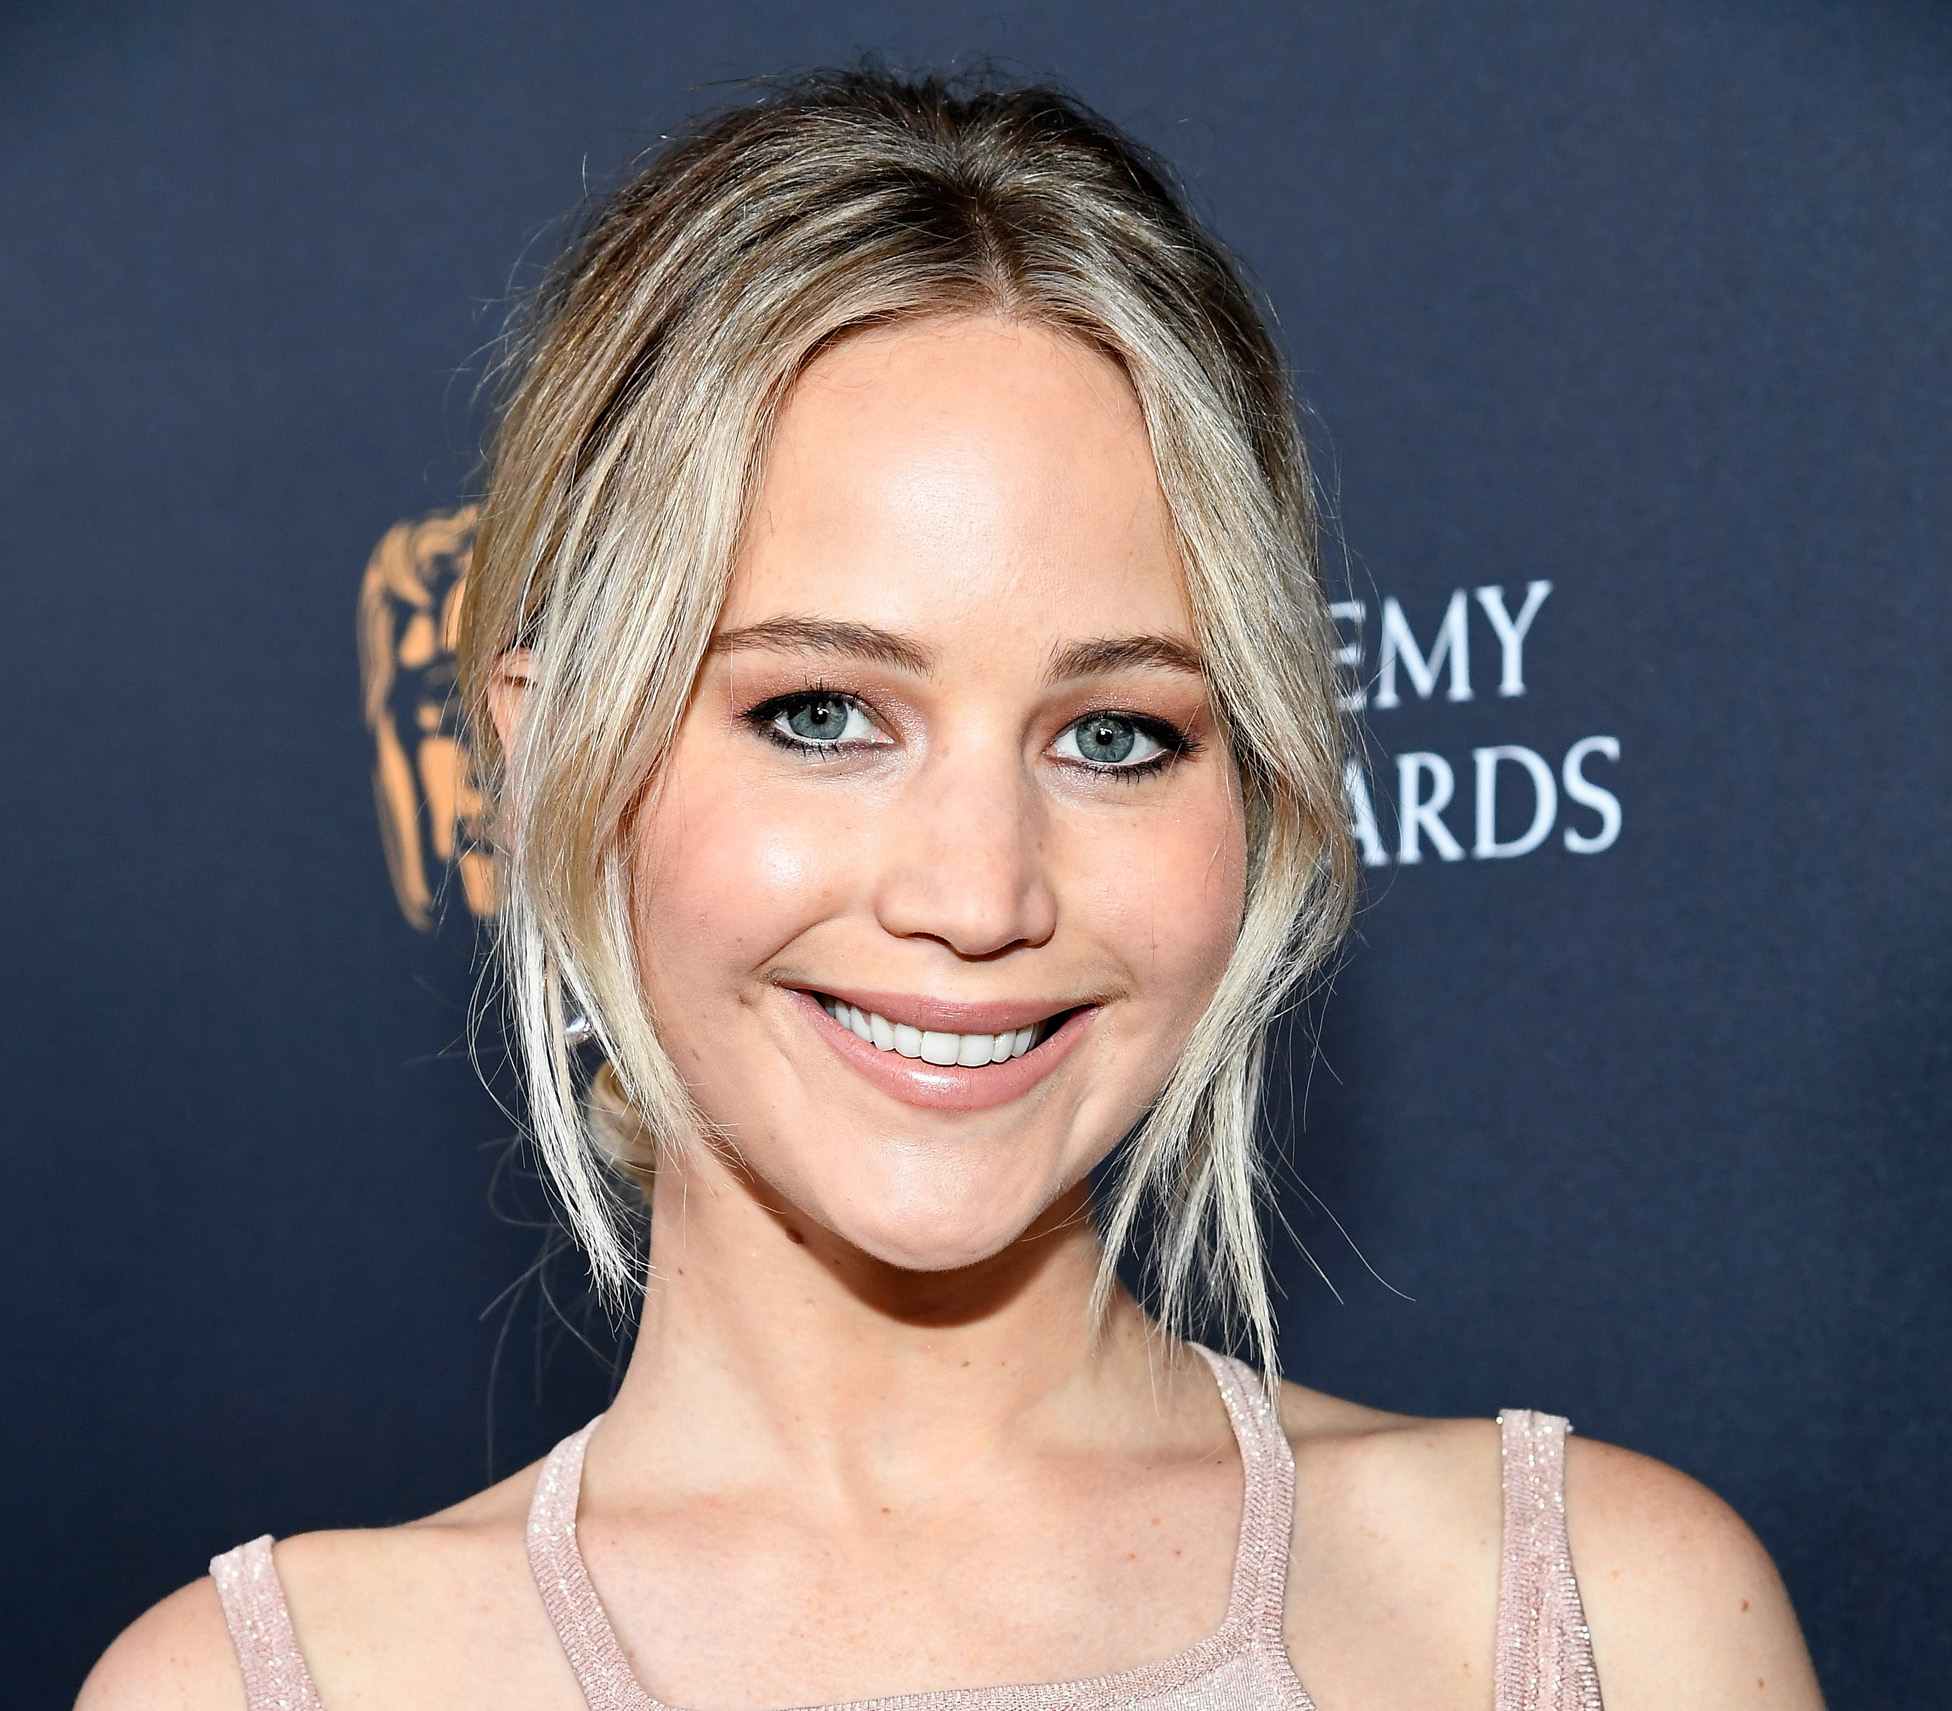 Jennifer Lawrence transformed into a '90s alt girl band singer